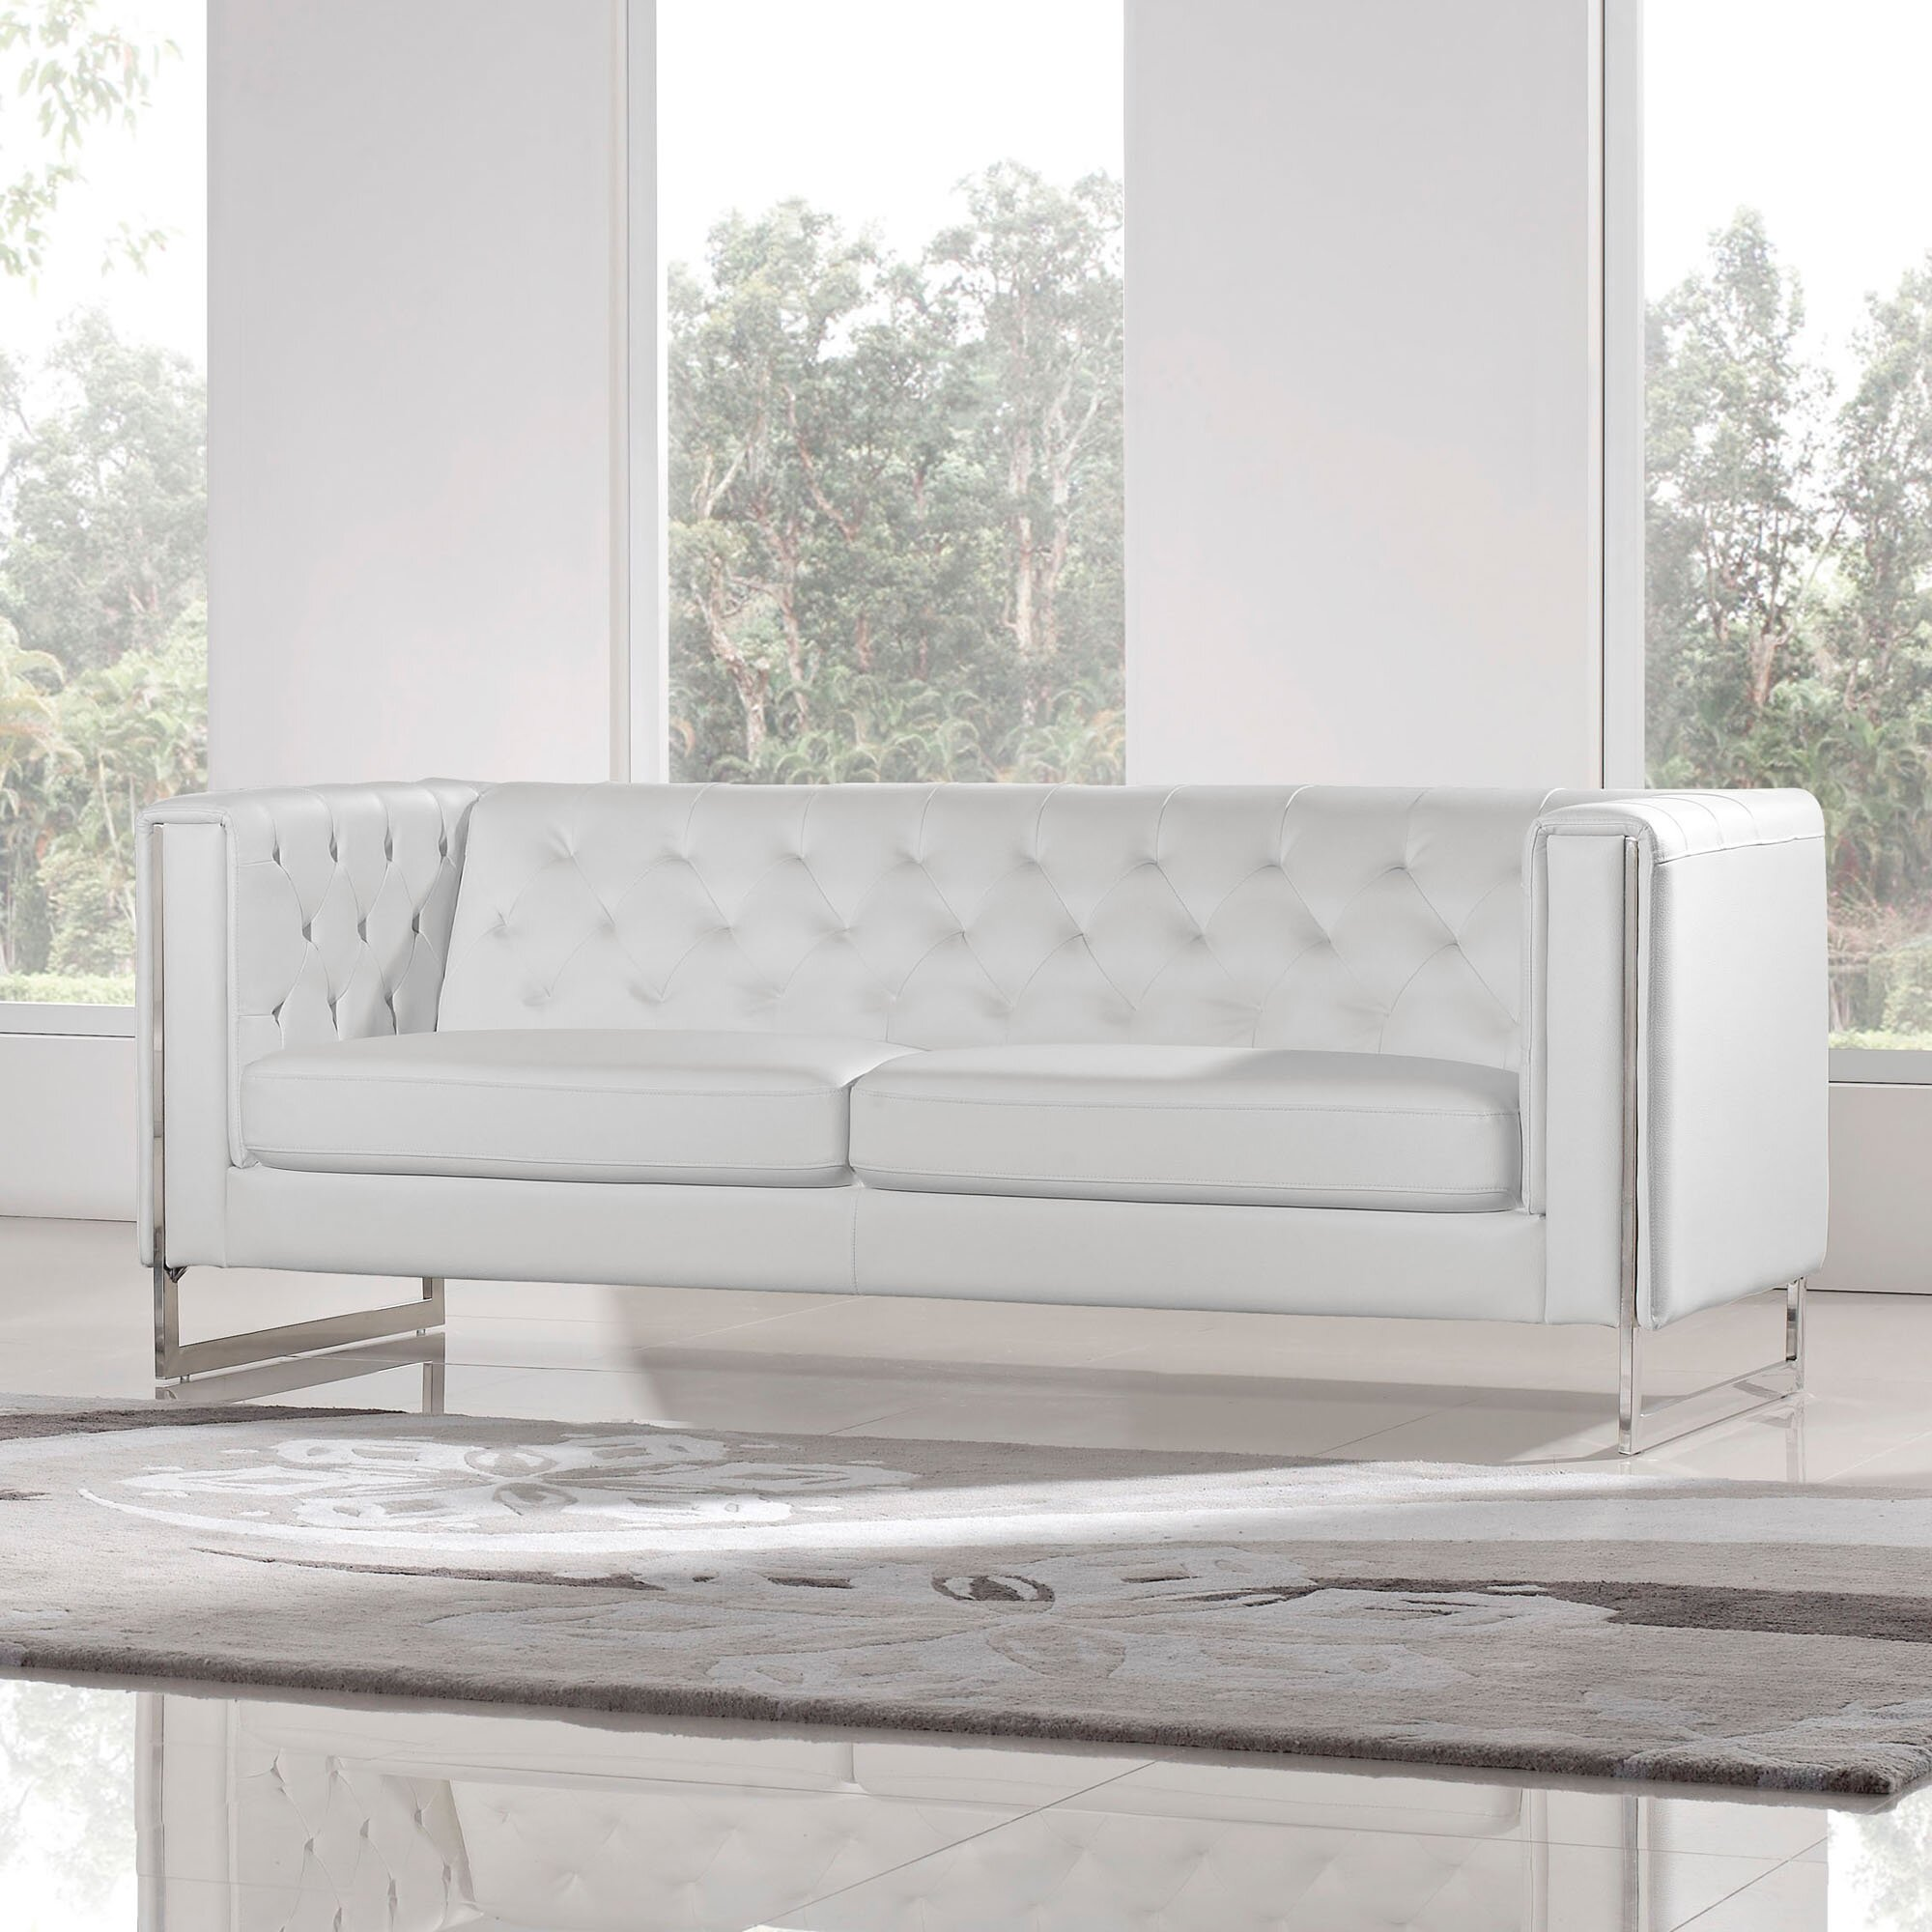 desert sand park linen lift parkavetrsd ave by sofa in storage save diamond top trunk tufted